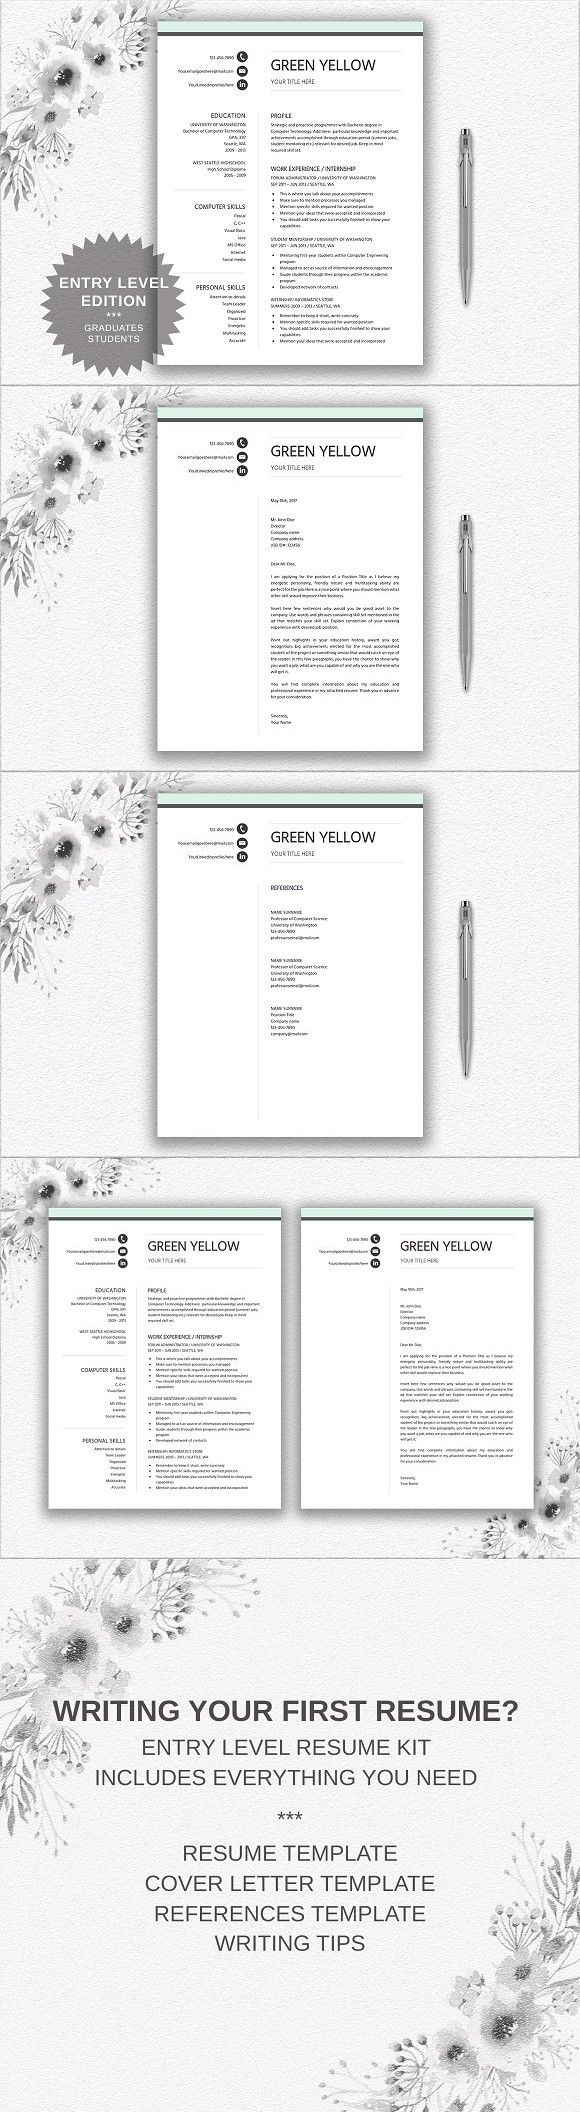 Resume Template Entry Level. Resume Templates